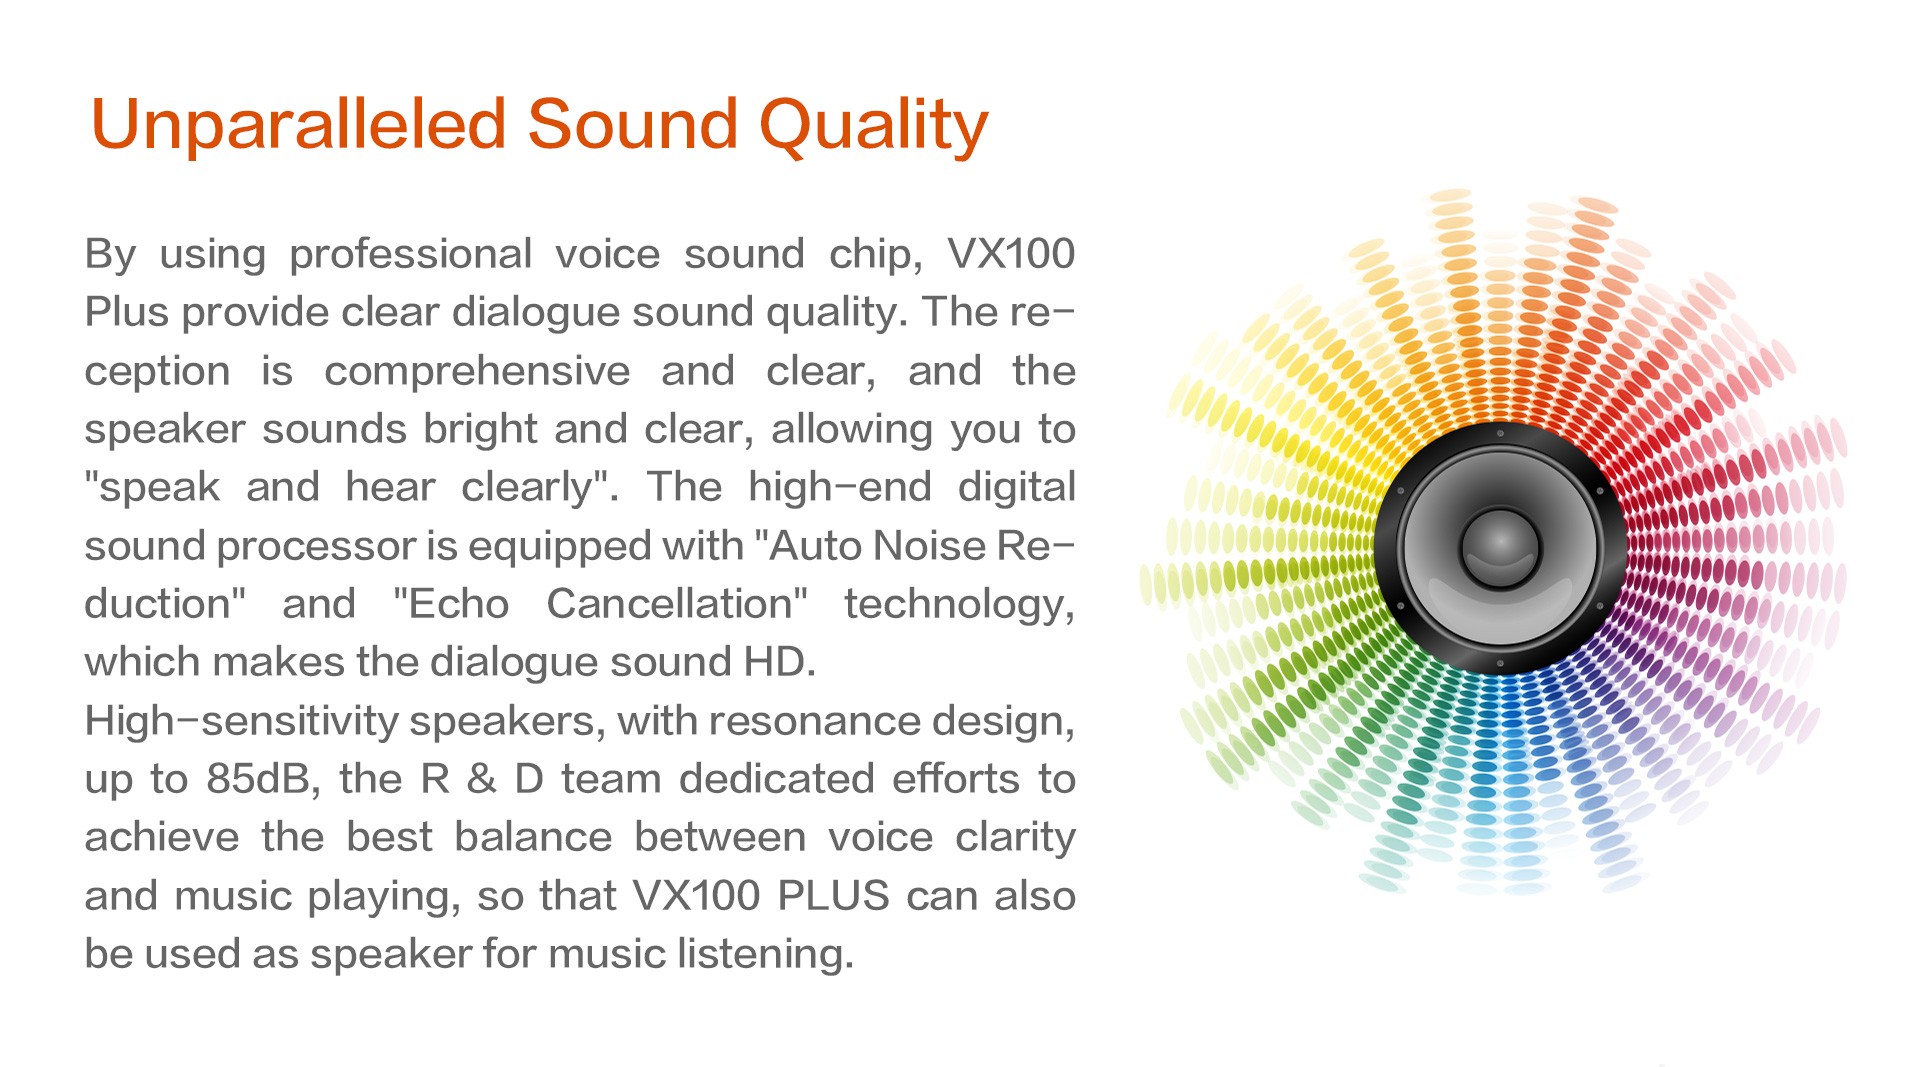 Unparalleled Sound Quality